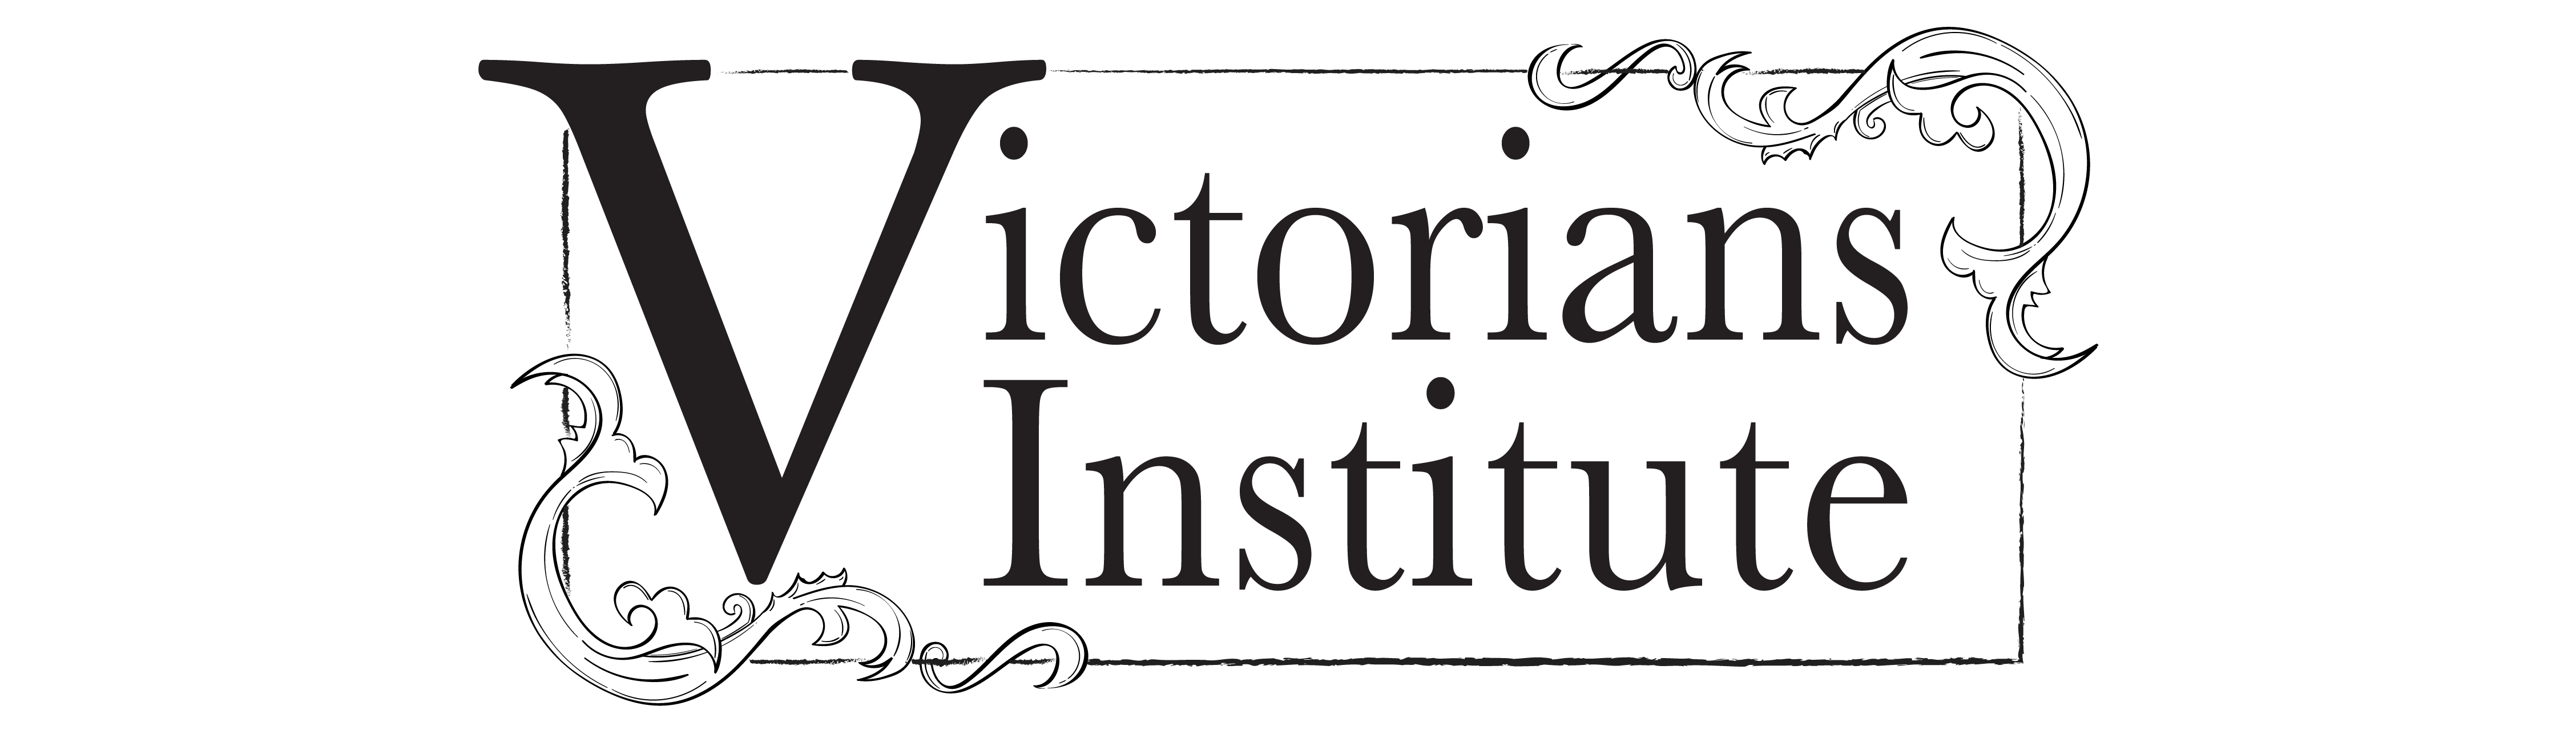 Victorians Institute and Journal